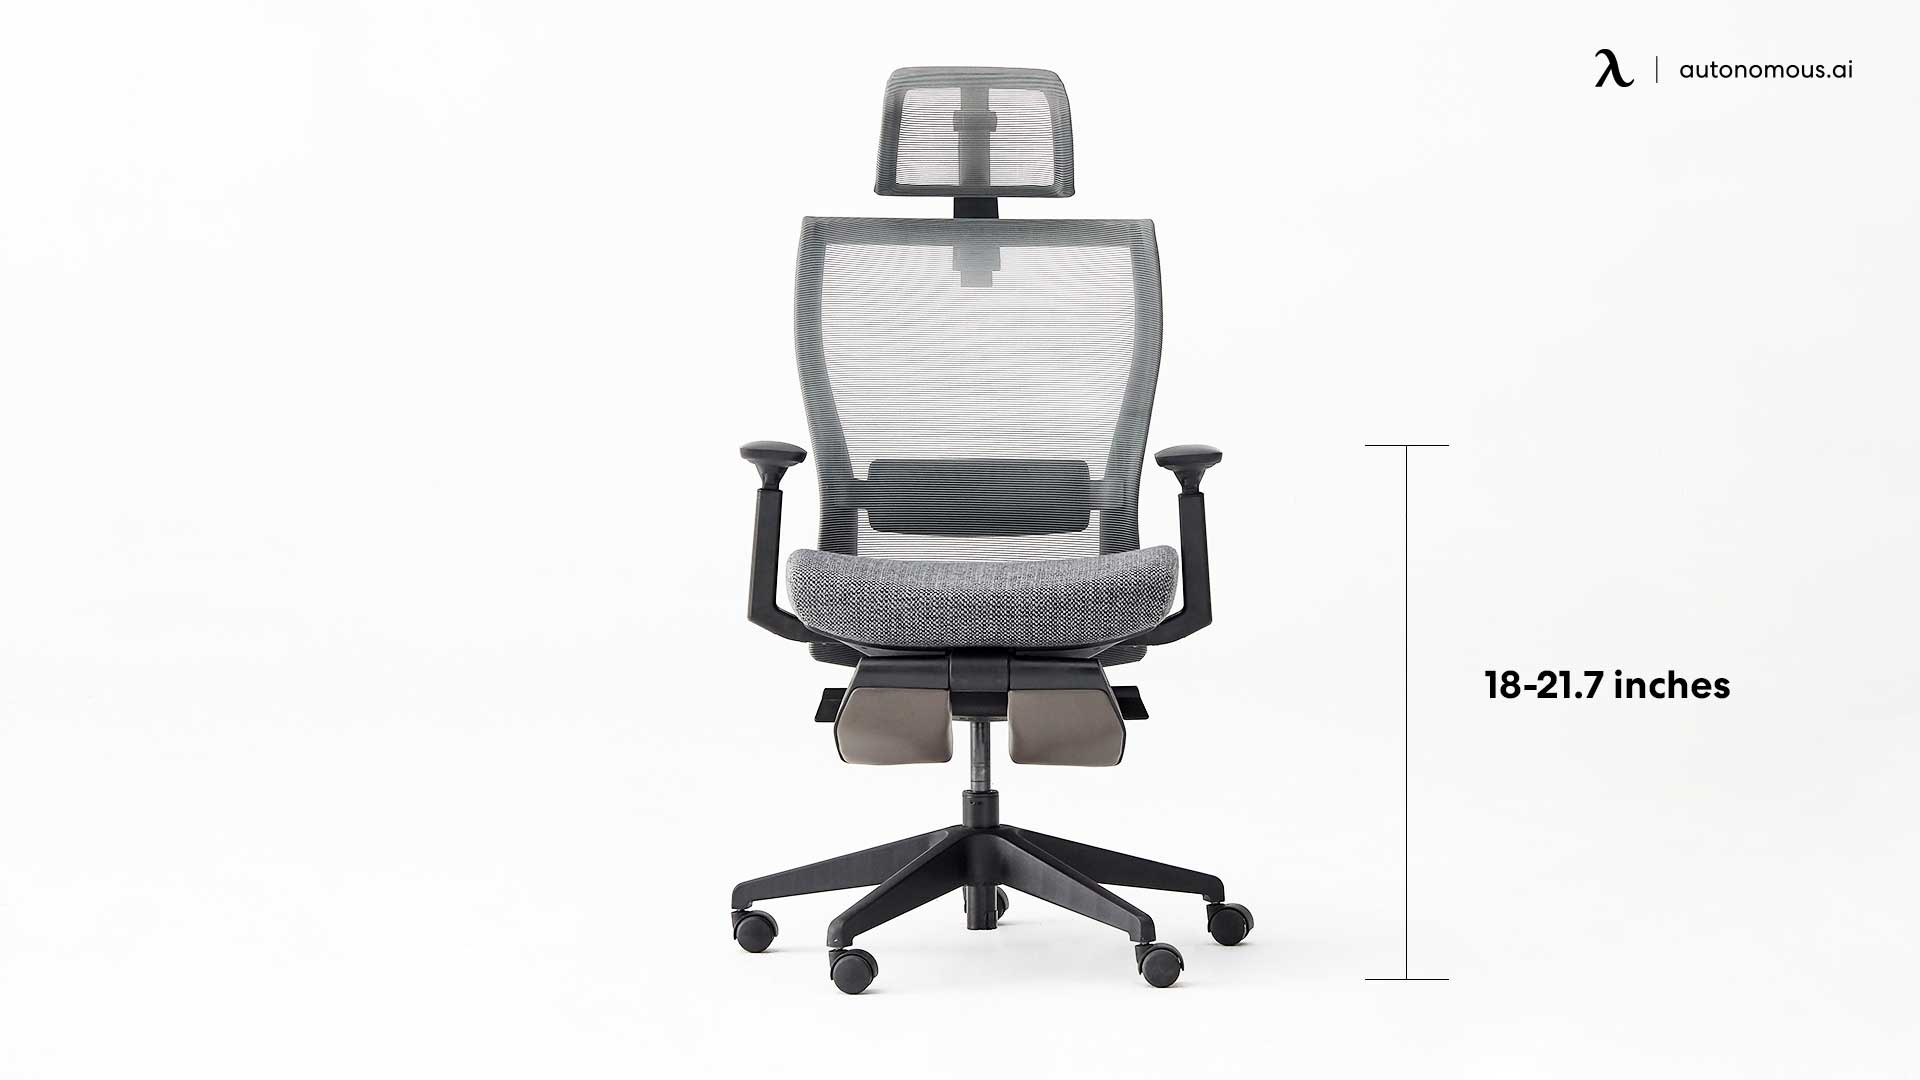 image relates to Height range of chair